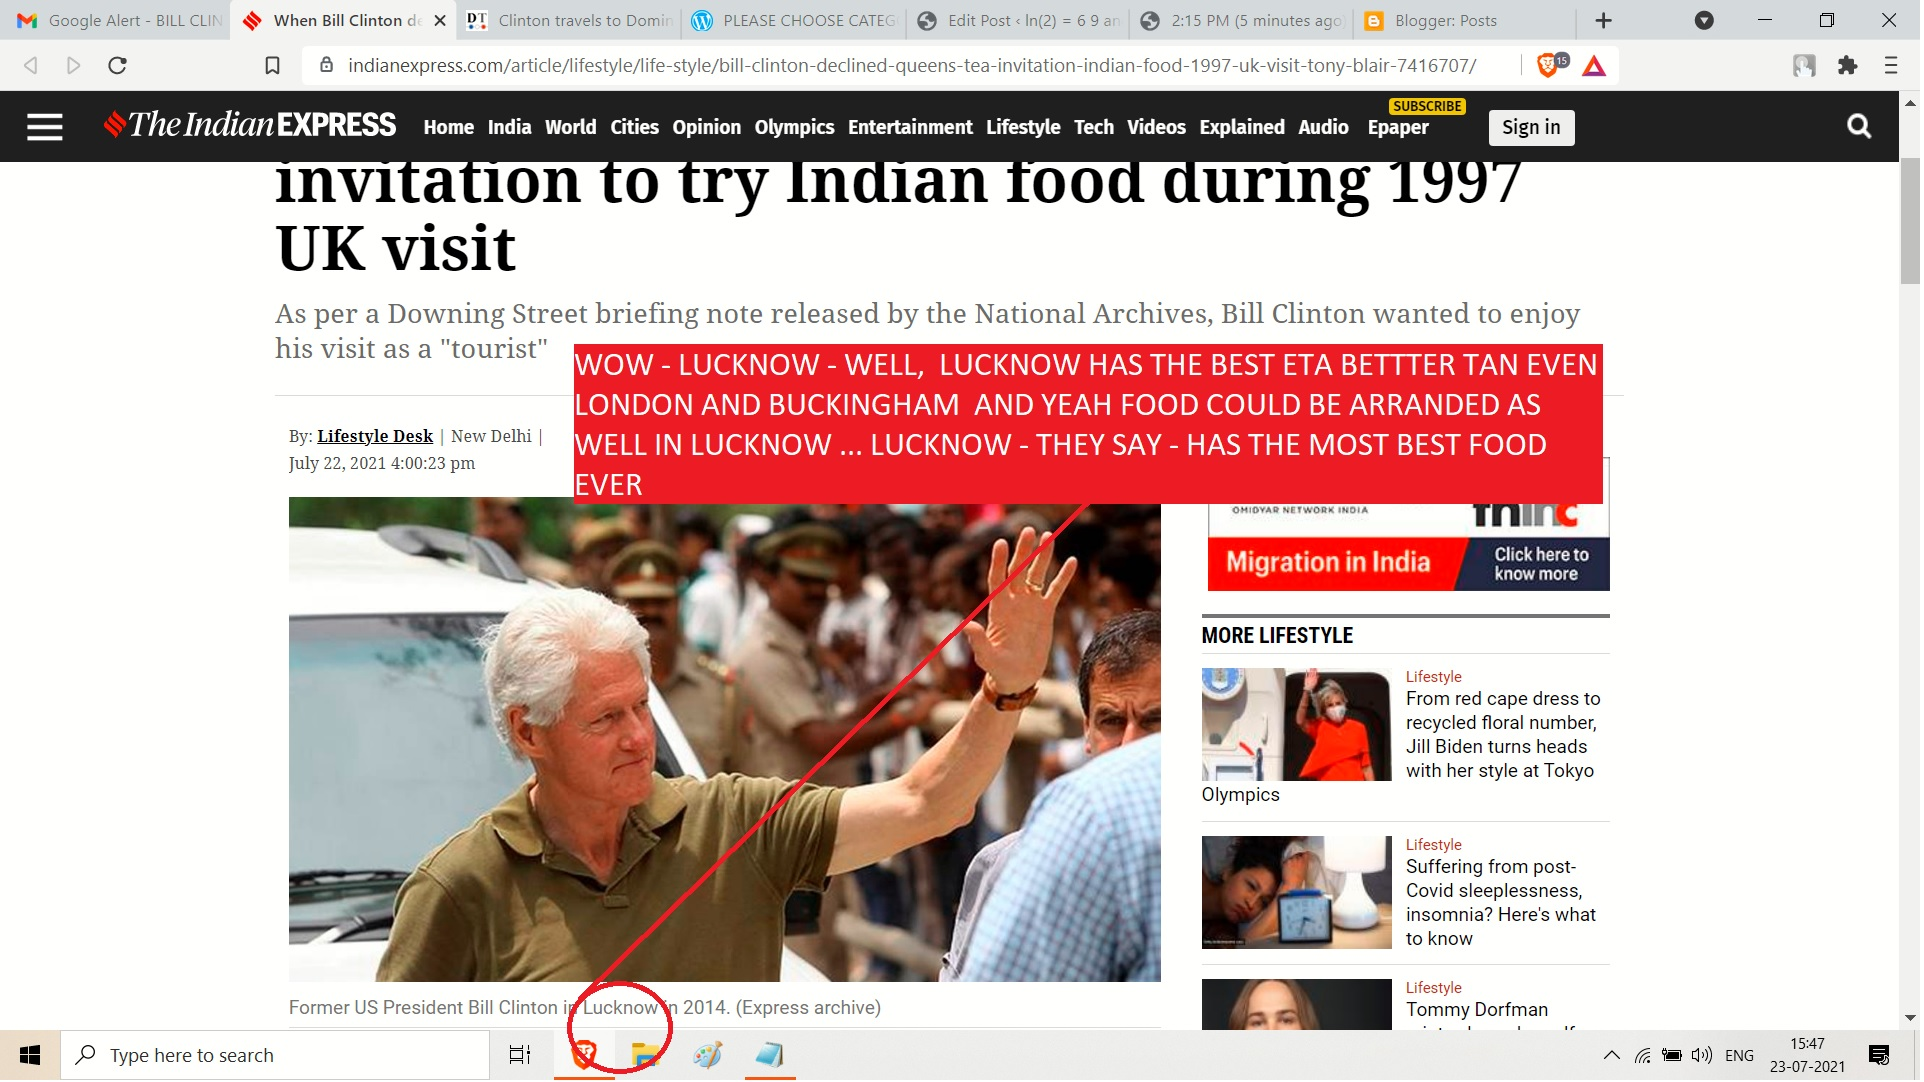 BILL CLINTON FOOD - LUCKNOW AND LONDON AND BUKINGHAM AND THE HOLY MOTEHR QUEEN TRIP